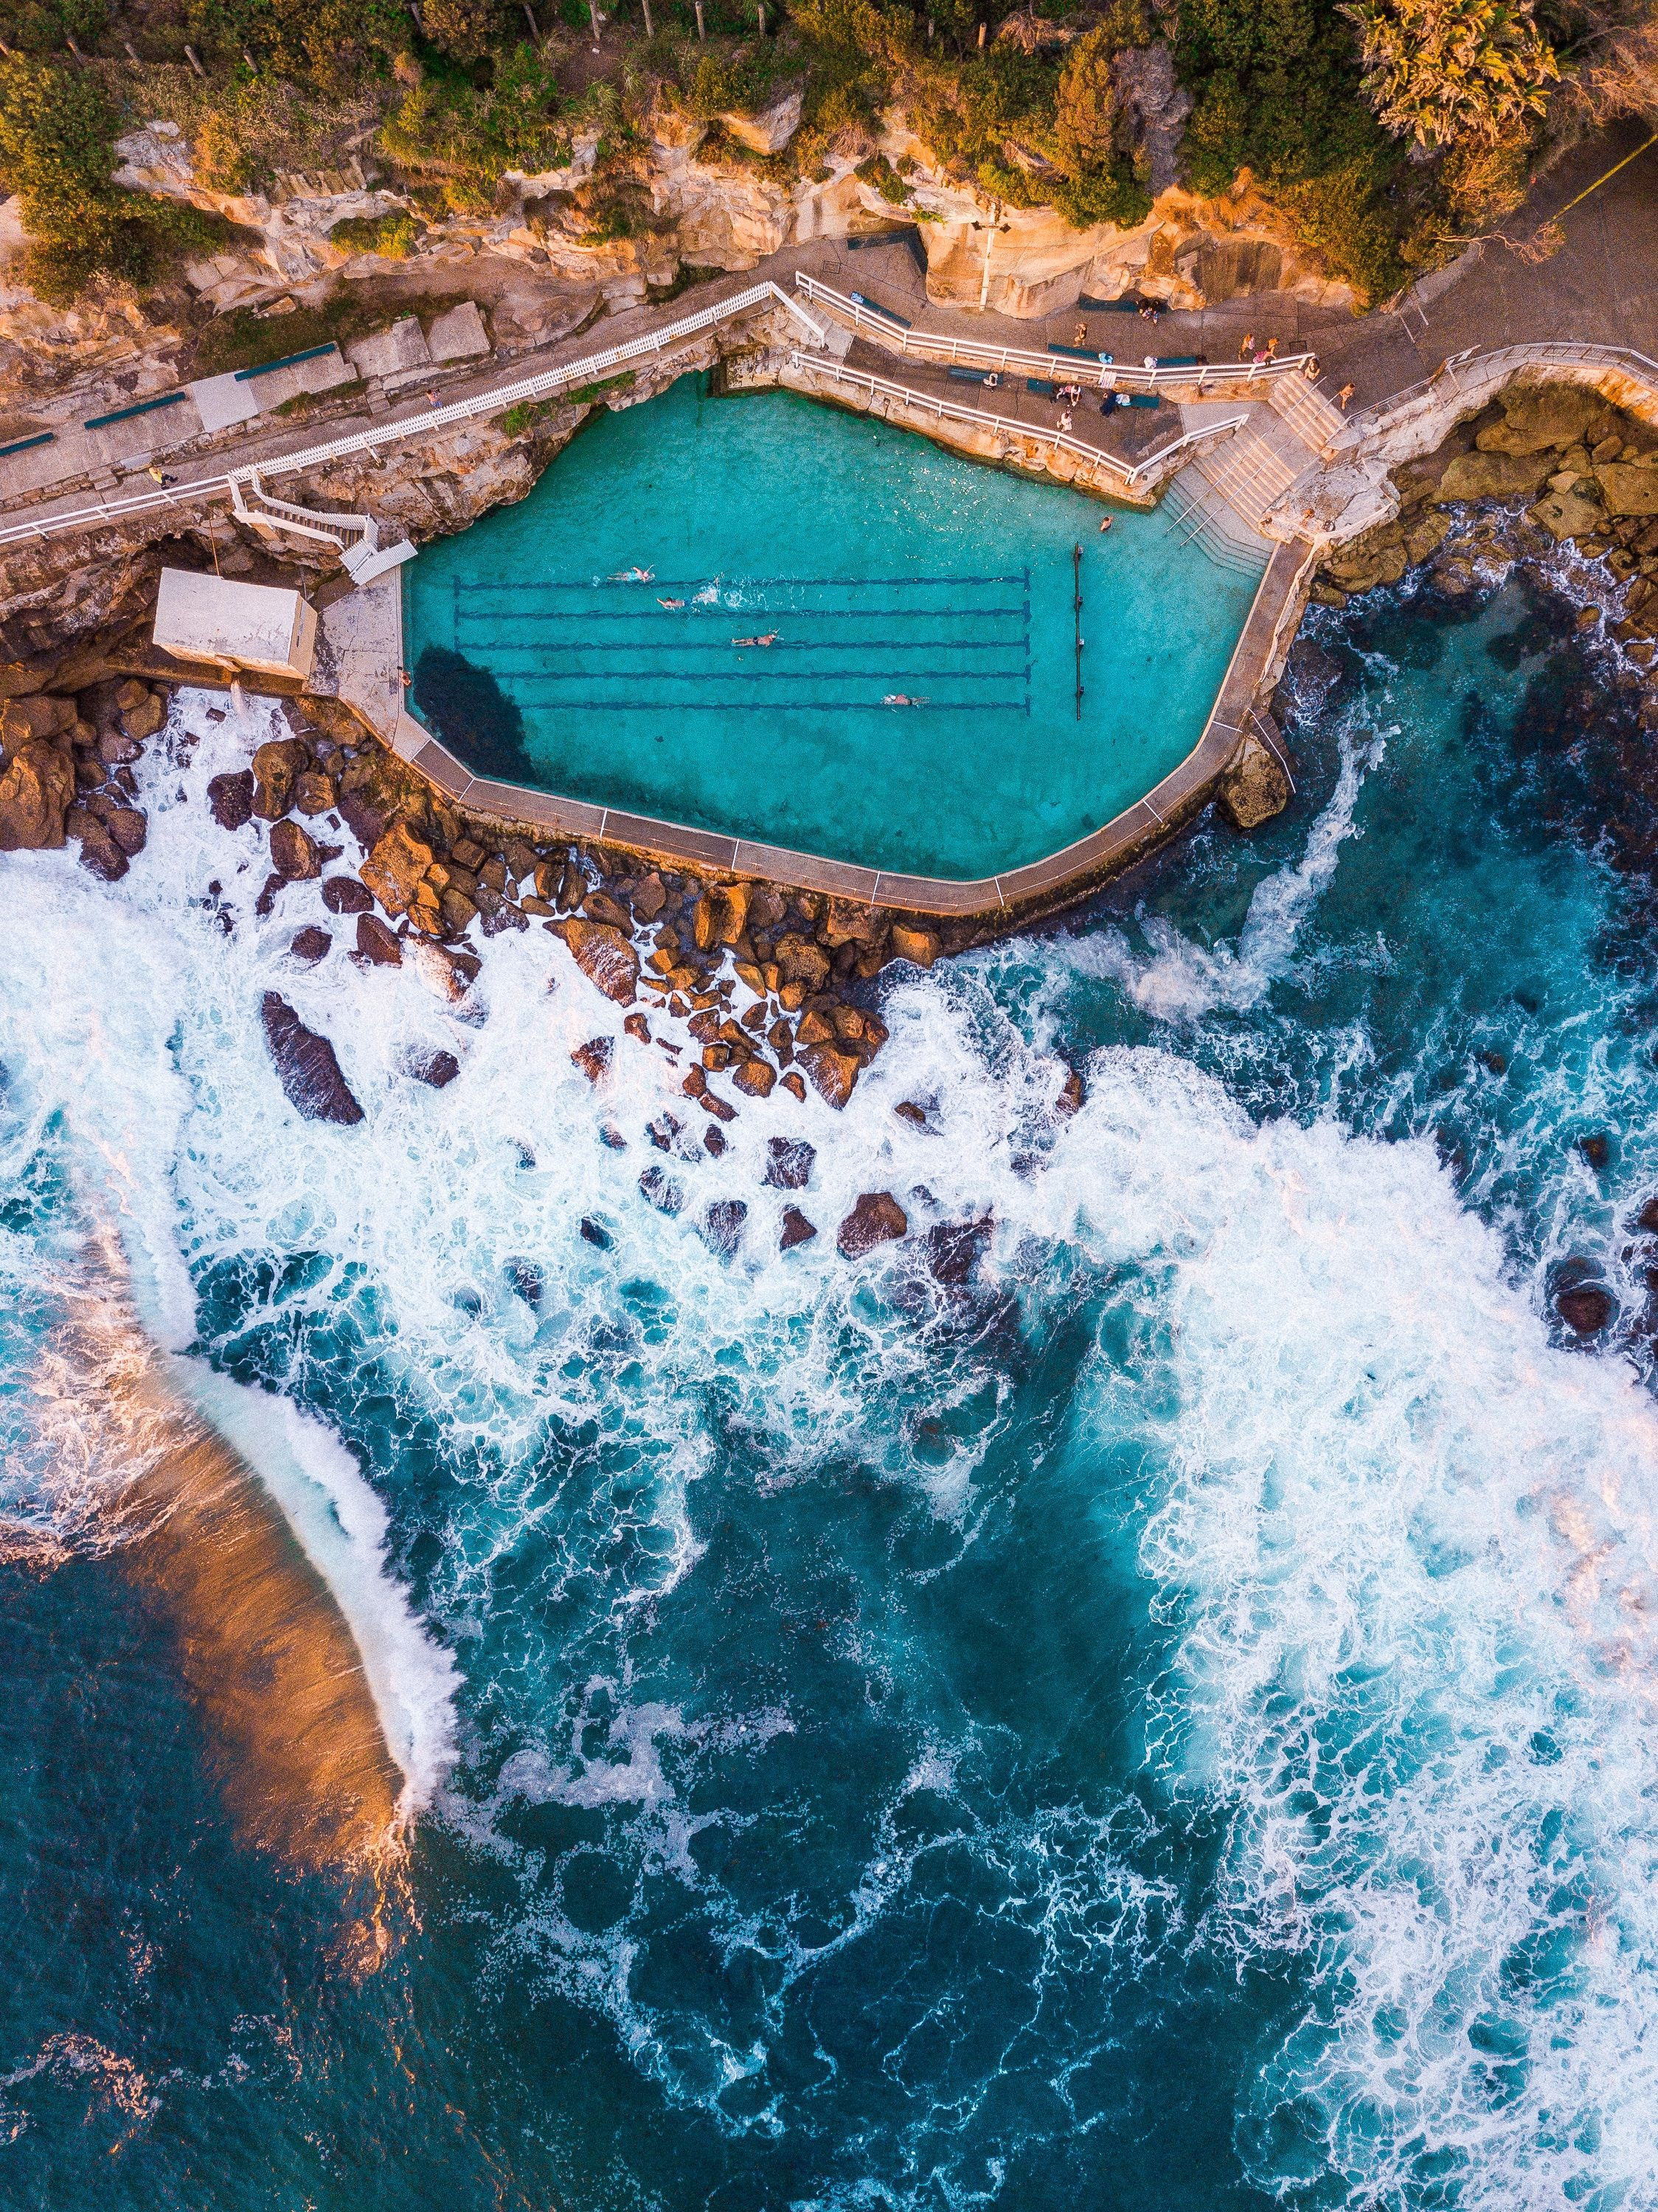 Bronte Rock Pool. Possibly The Most Beautiful Pool In The